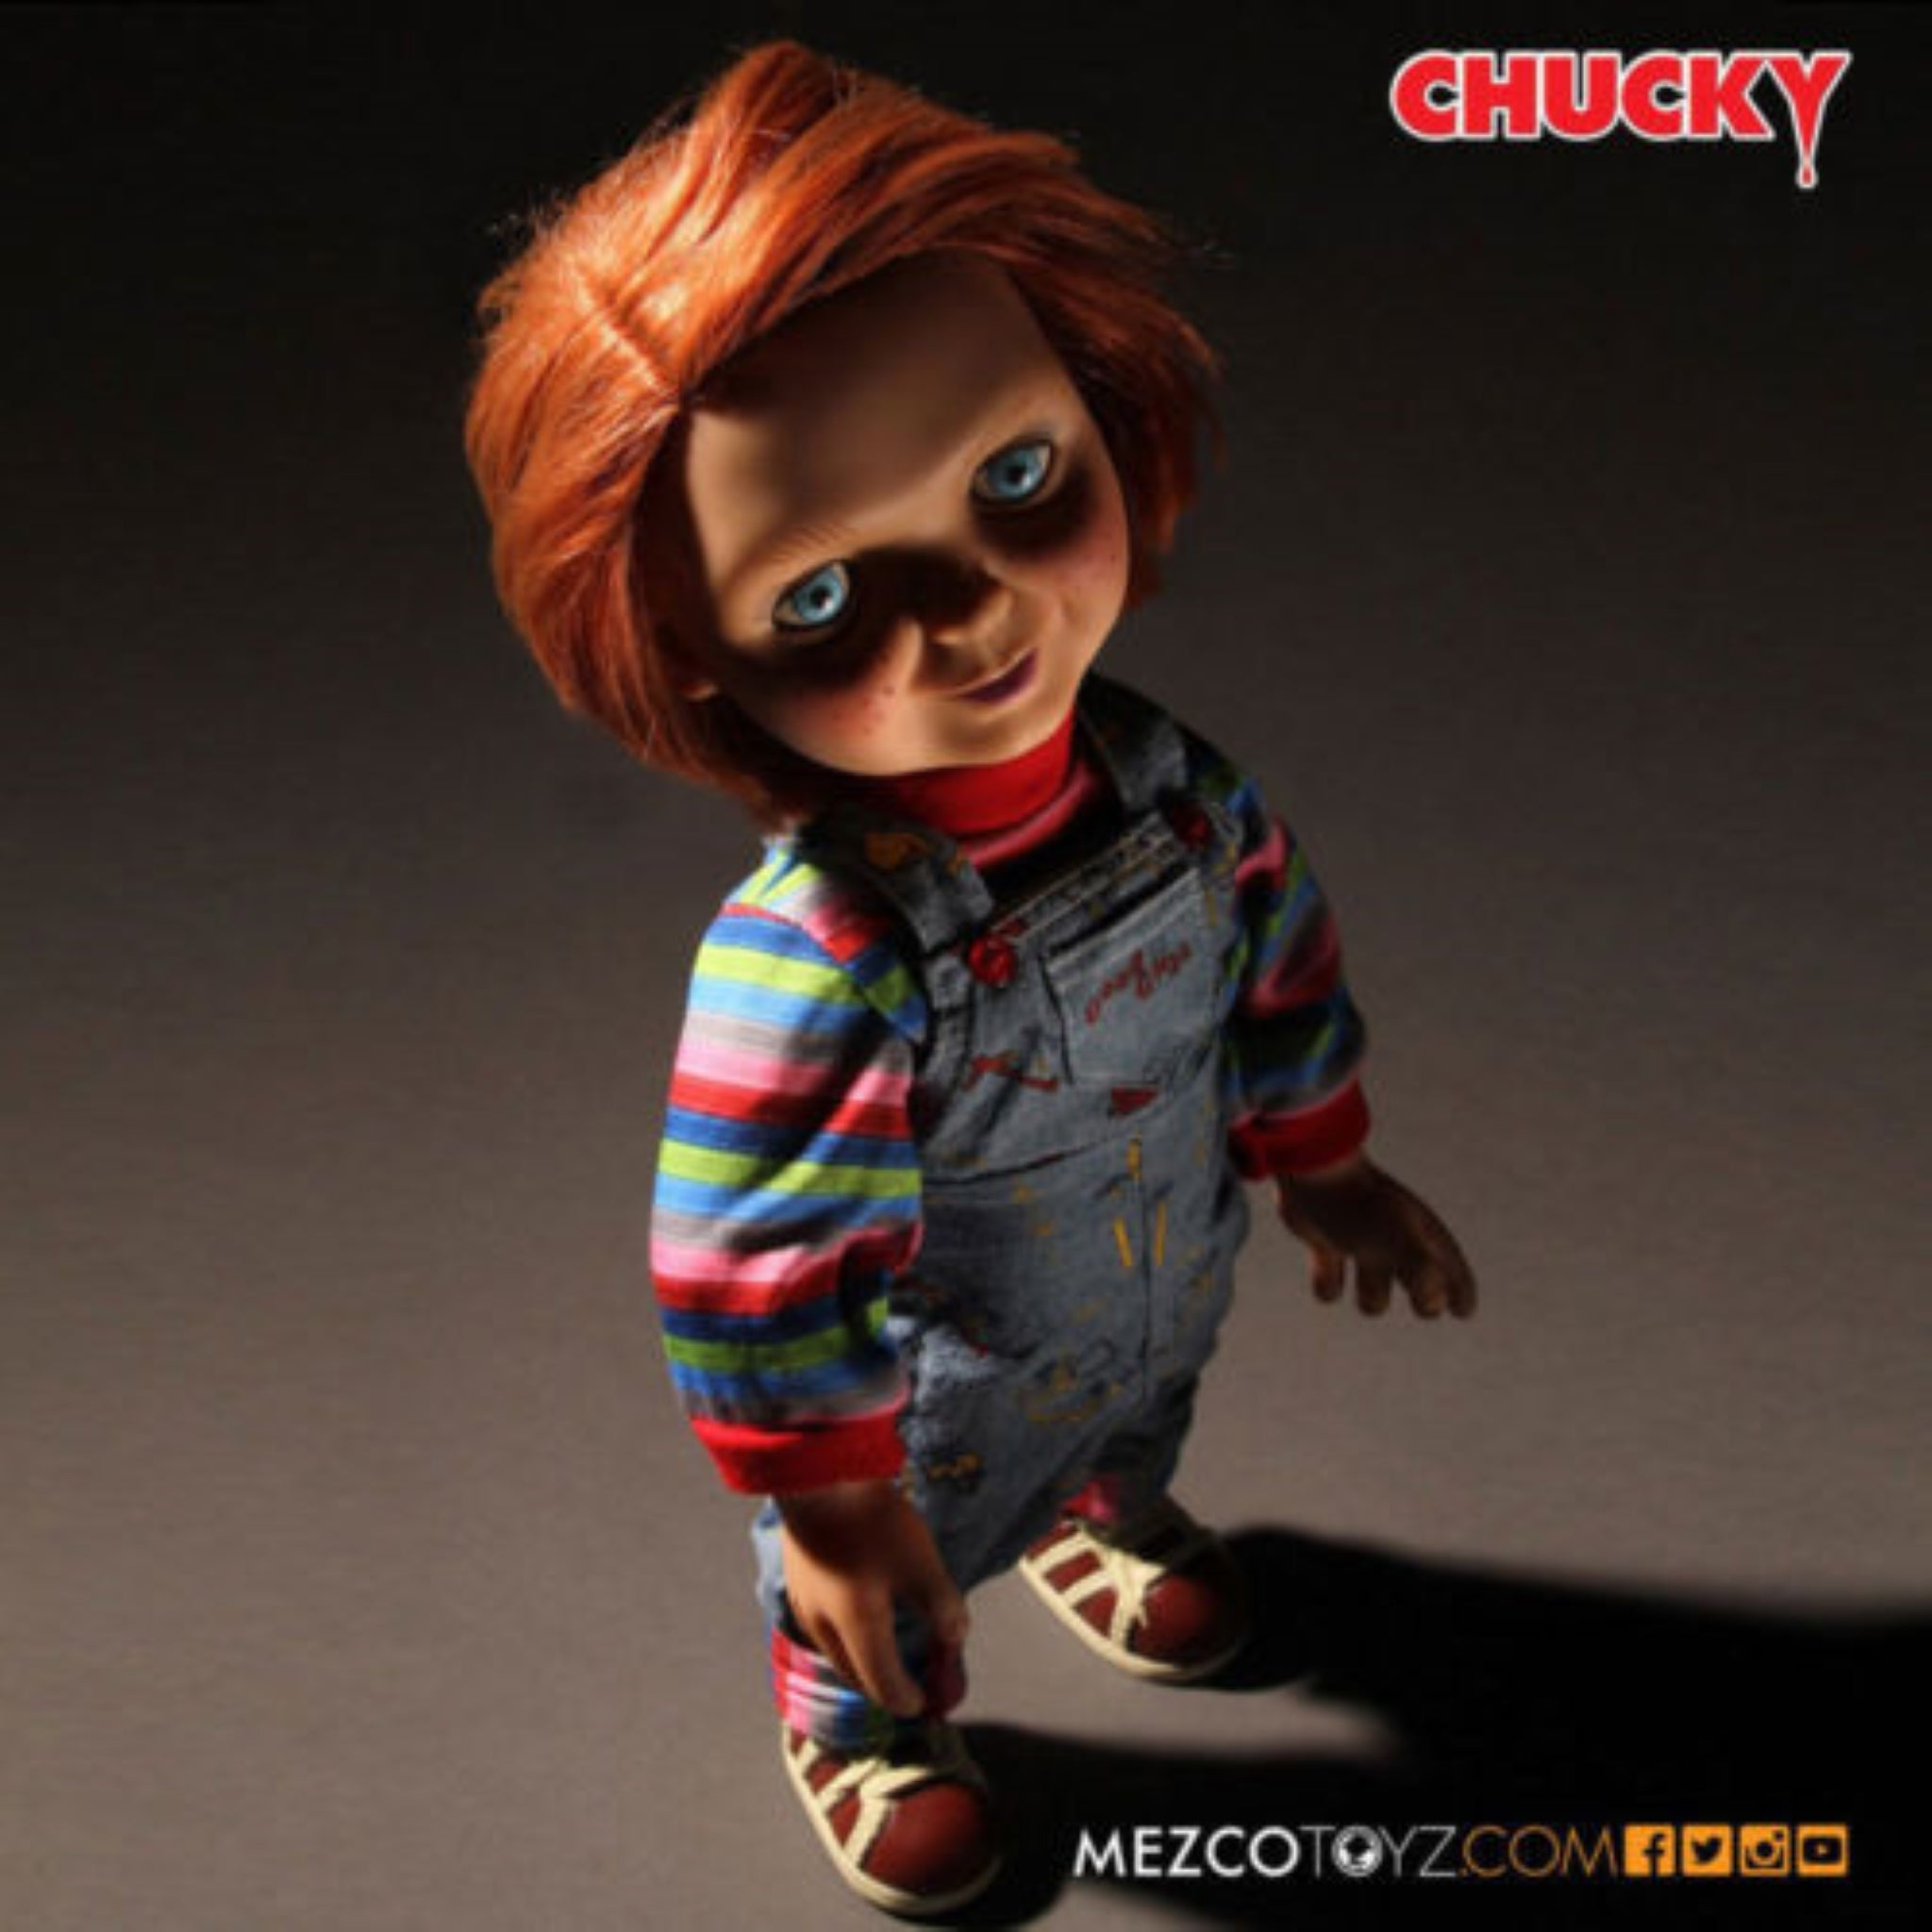 Mezco Child's Play Good Guys Chucky Talking Doll